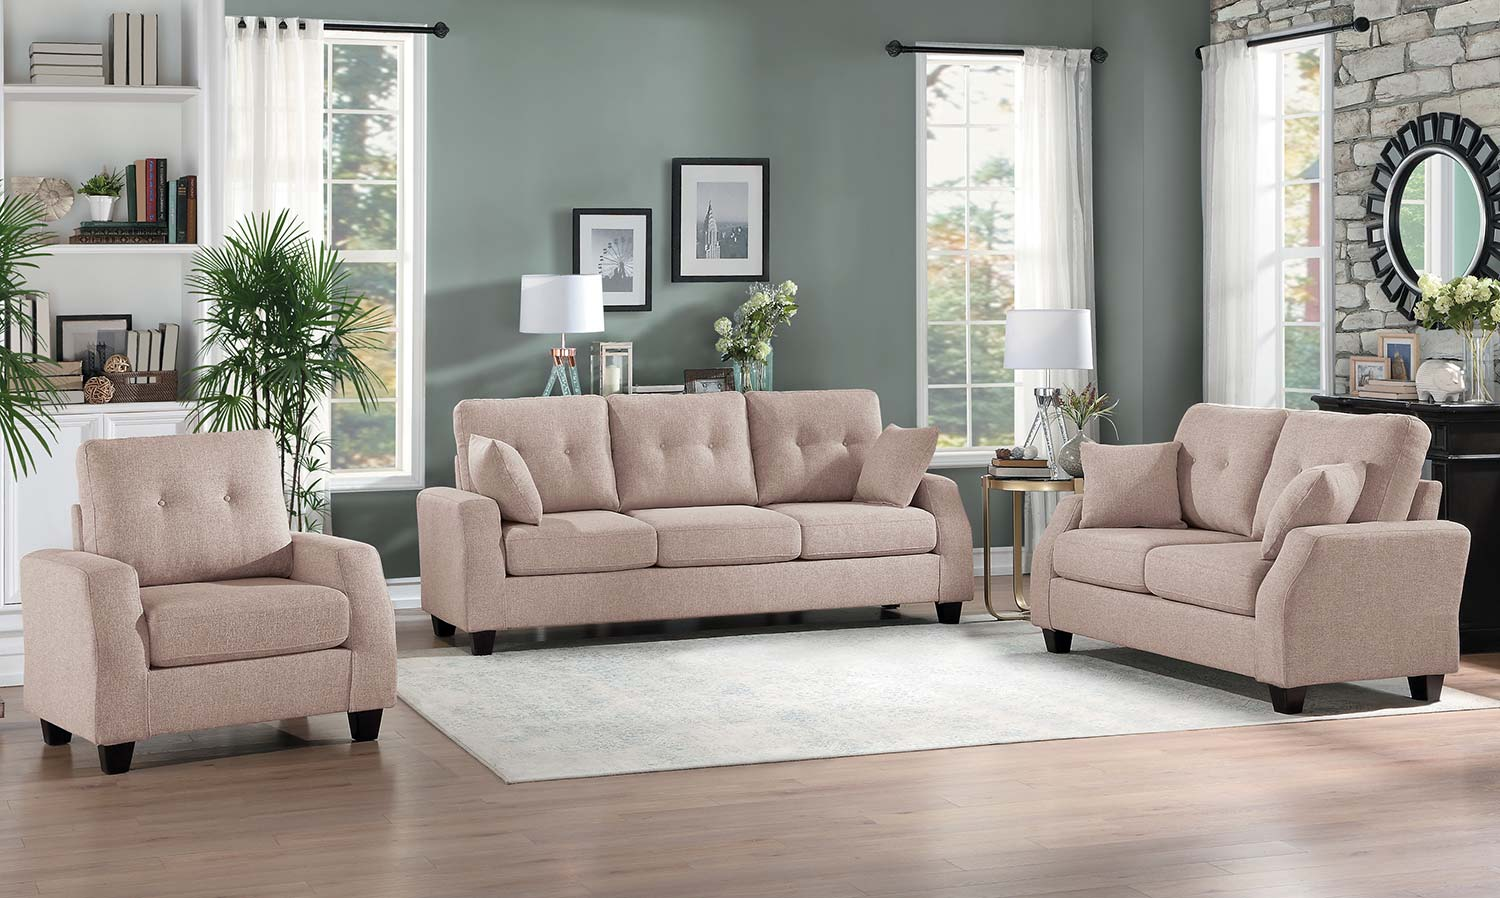 Homelegance Vossel Sofa Set - Sand